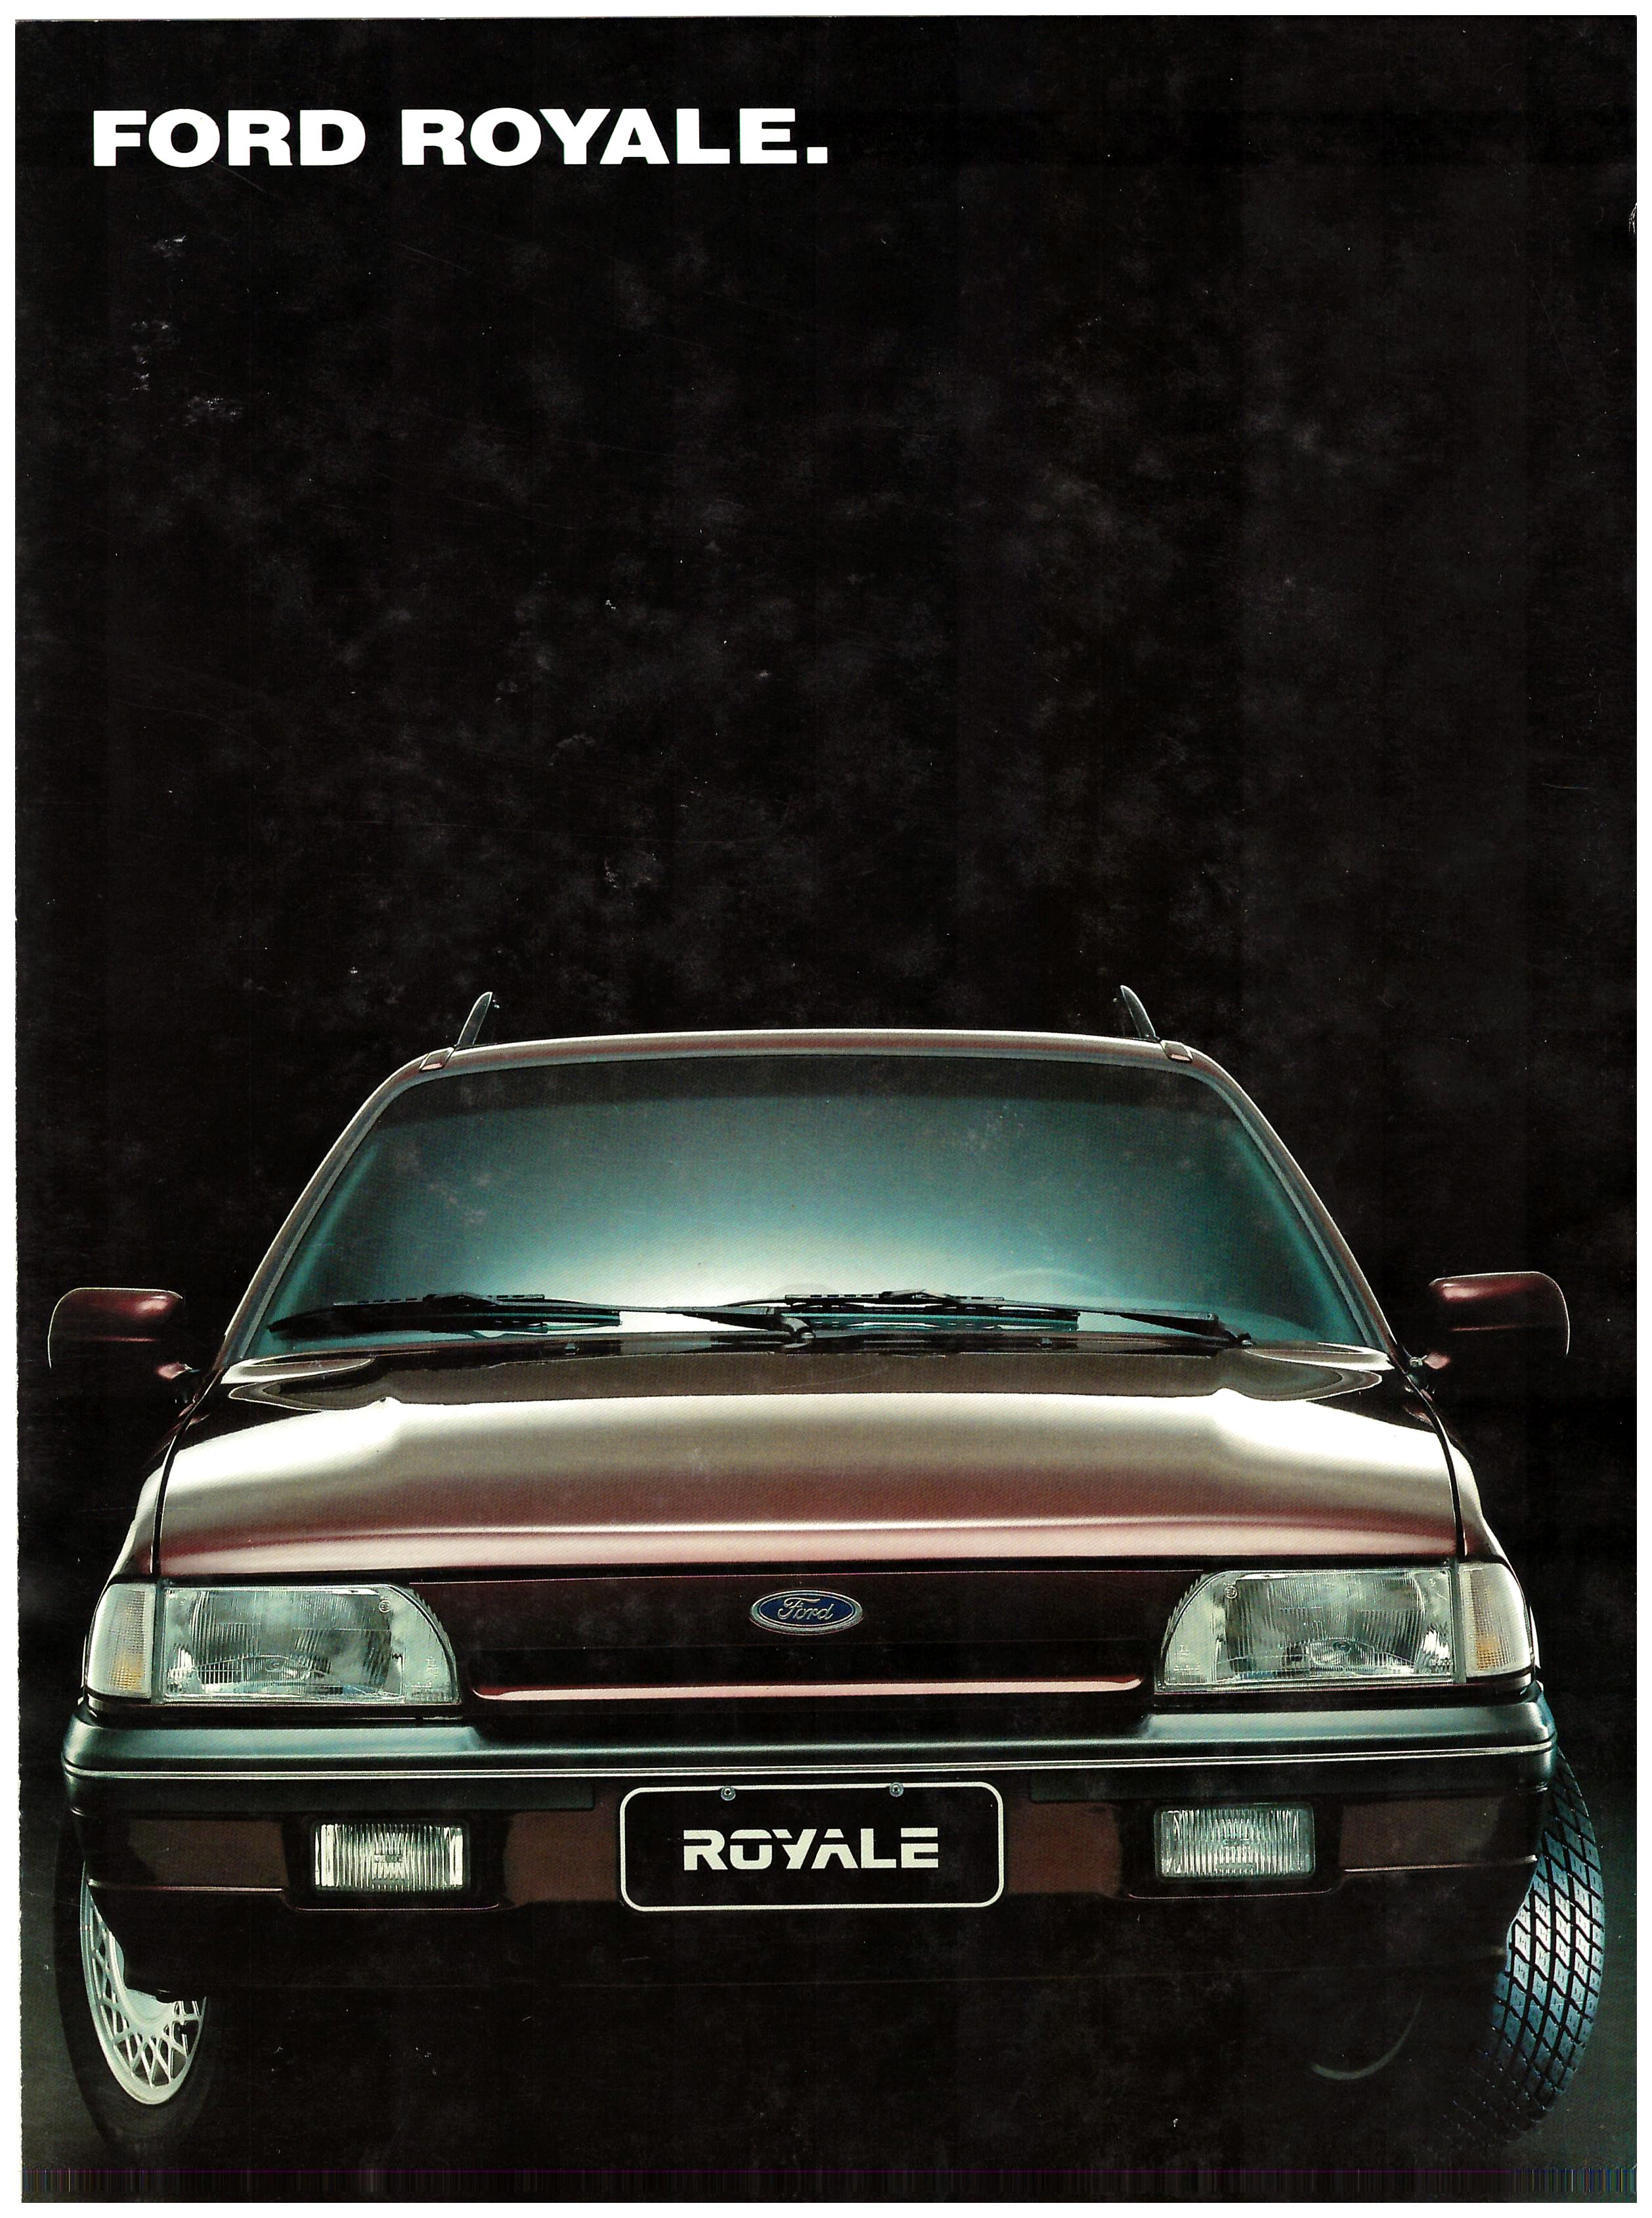 1993 Ford Royale #18